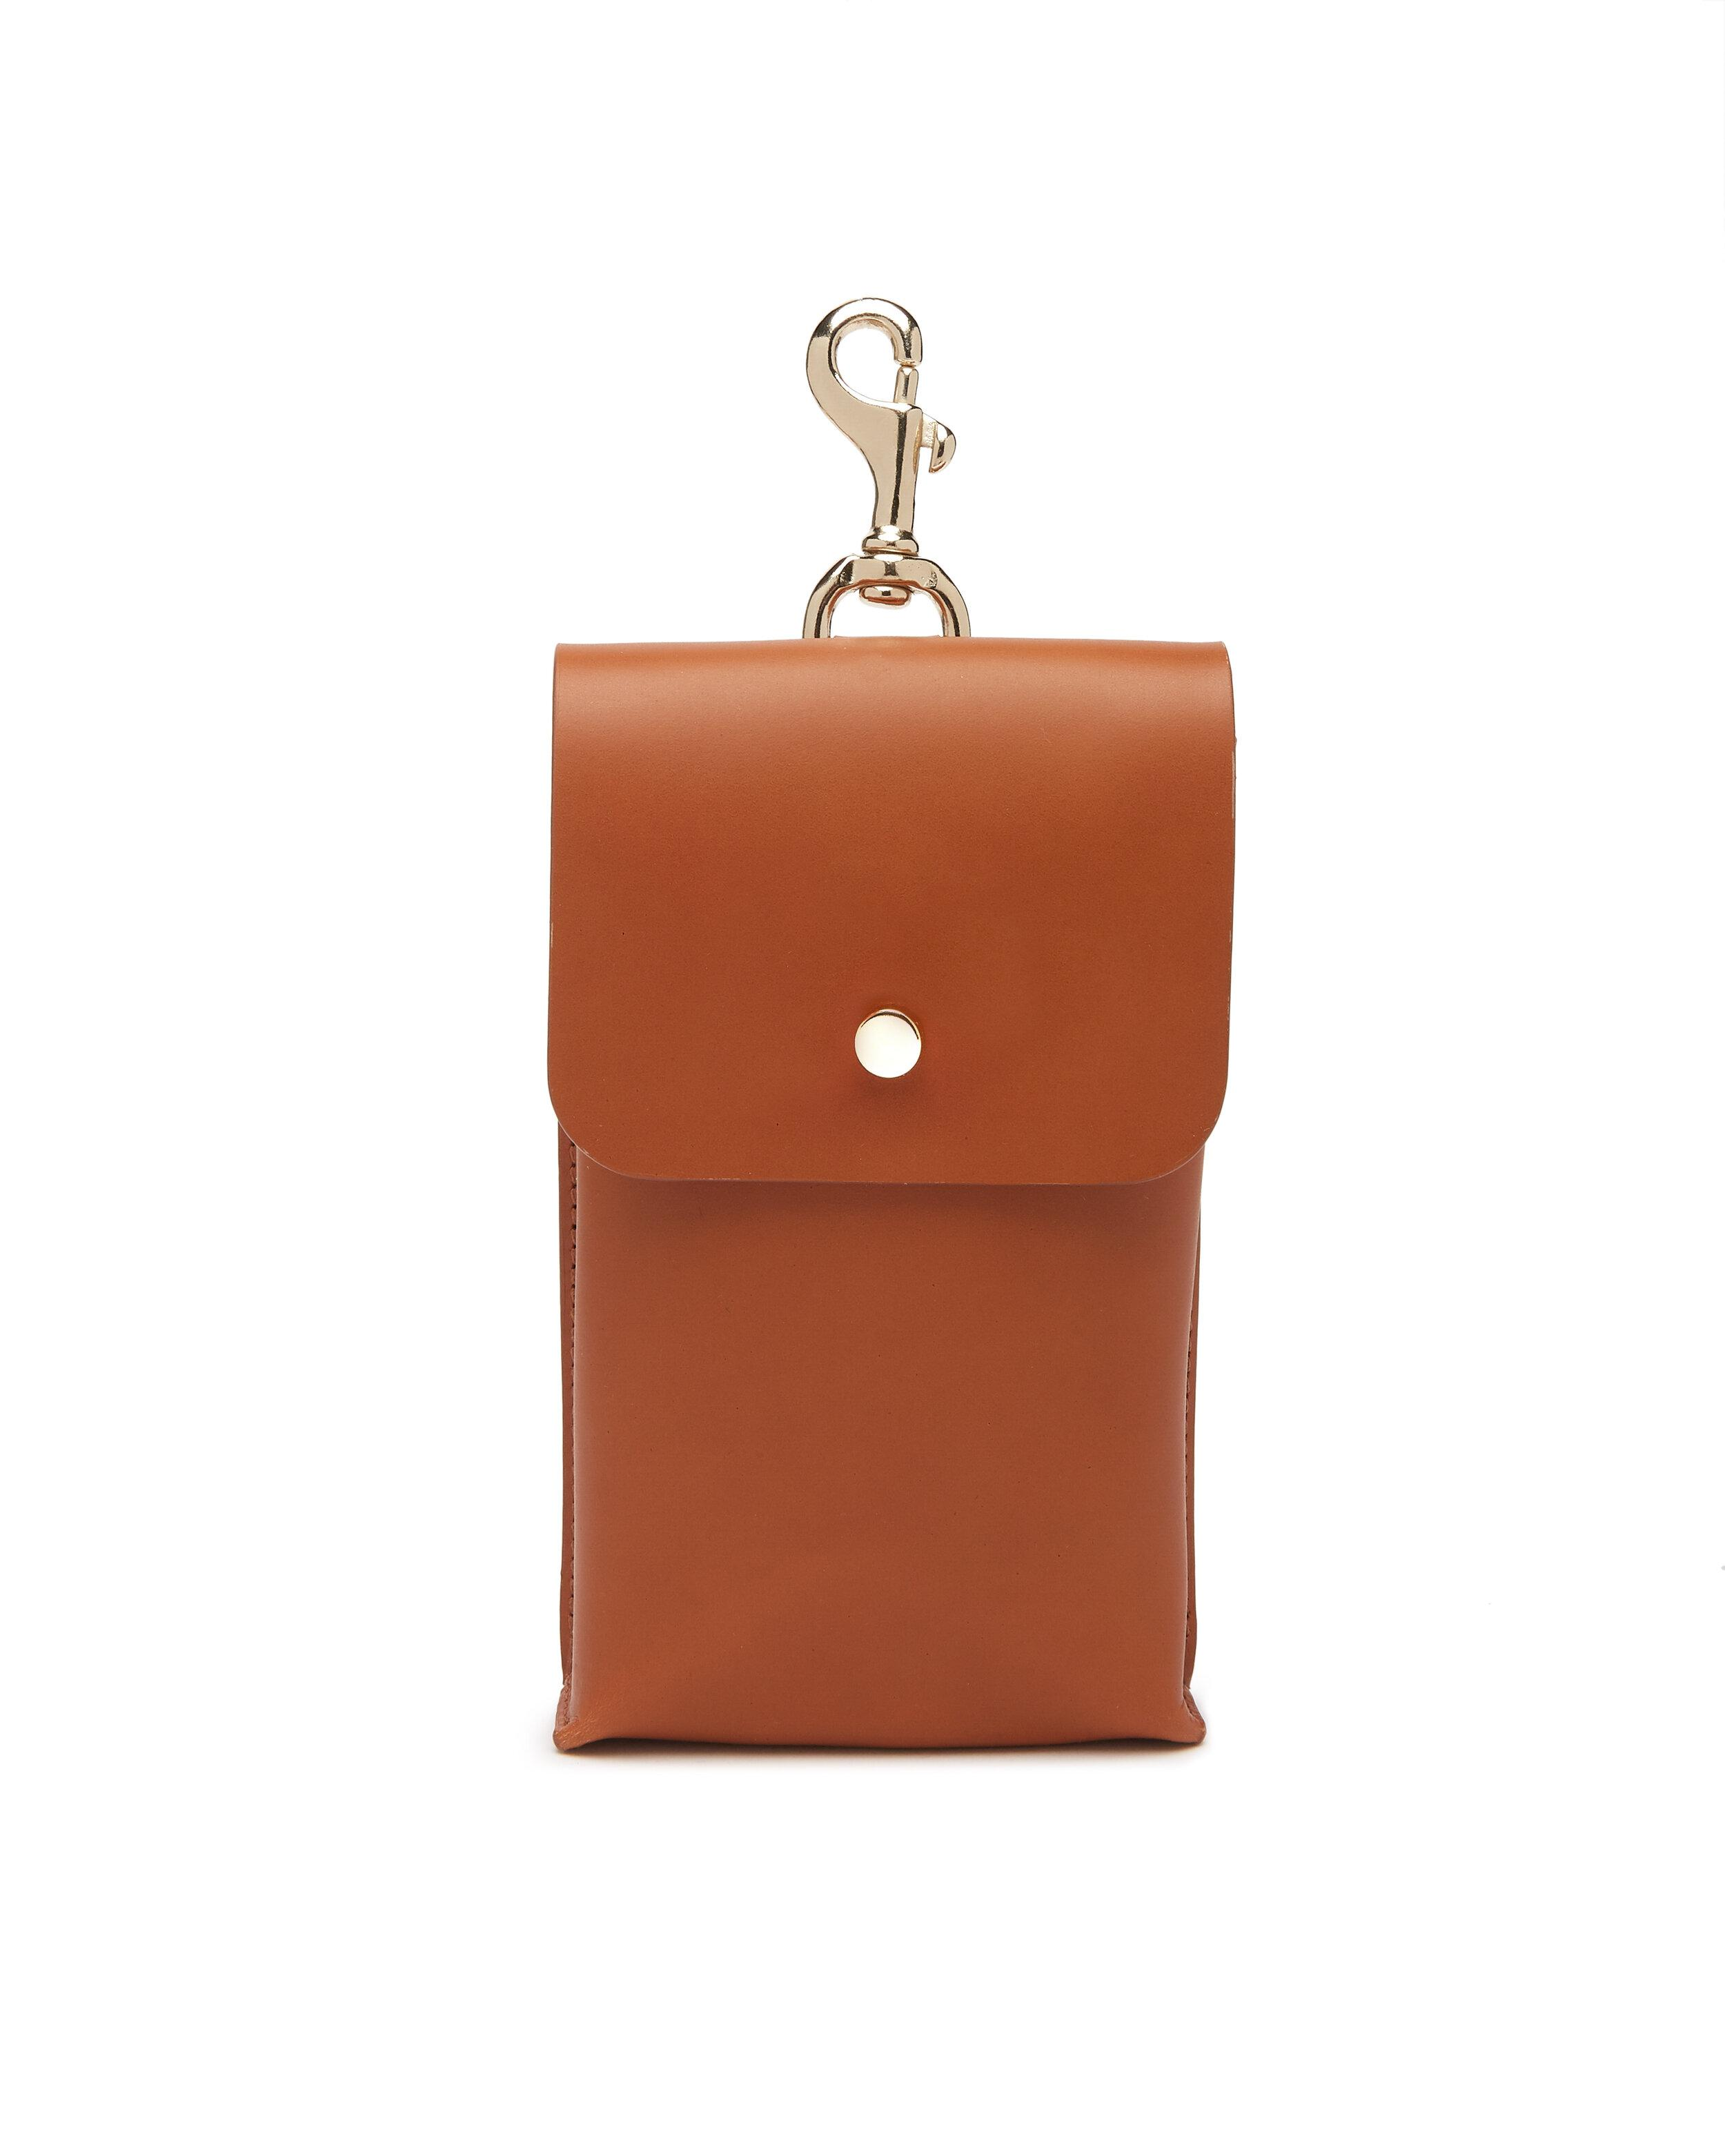 Phone Pouch - Tan Leather